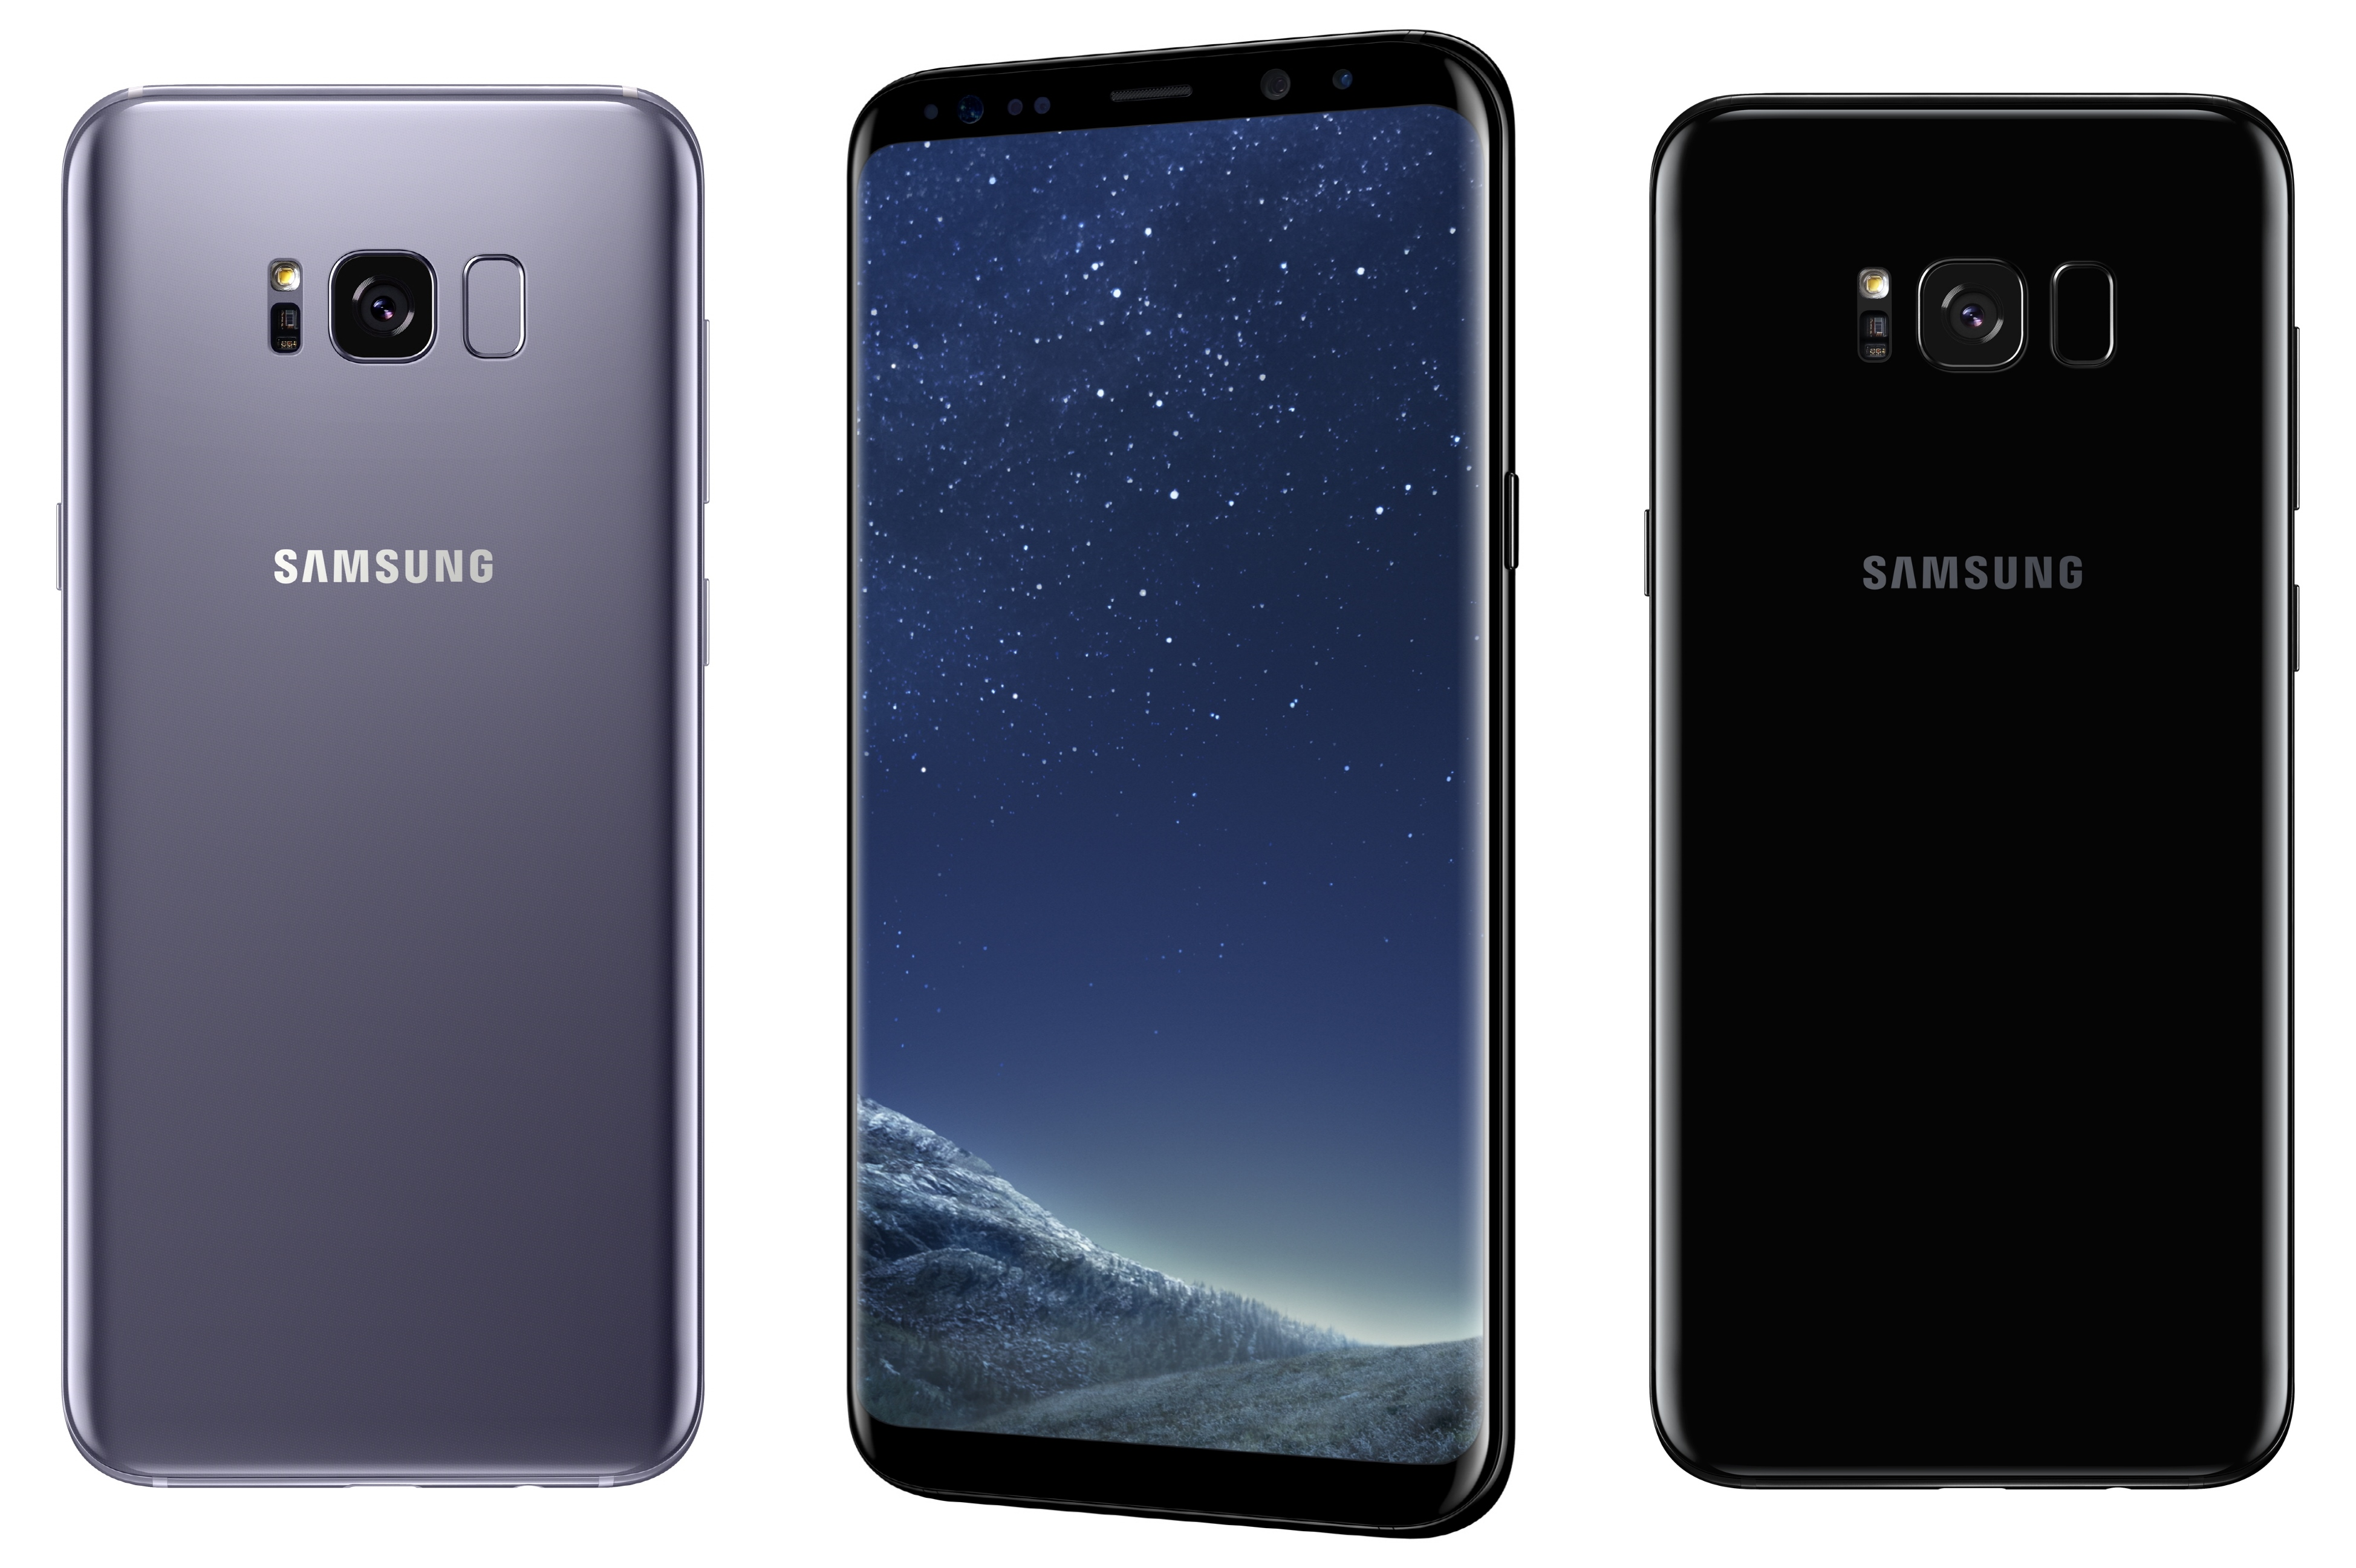 Galaxy Vr Apps >> Samsung unveils Galaxy S8 and S8+, launches VR content service | Mobile Marketing Magazine